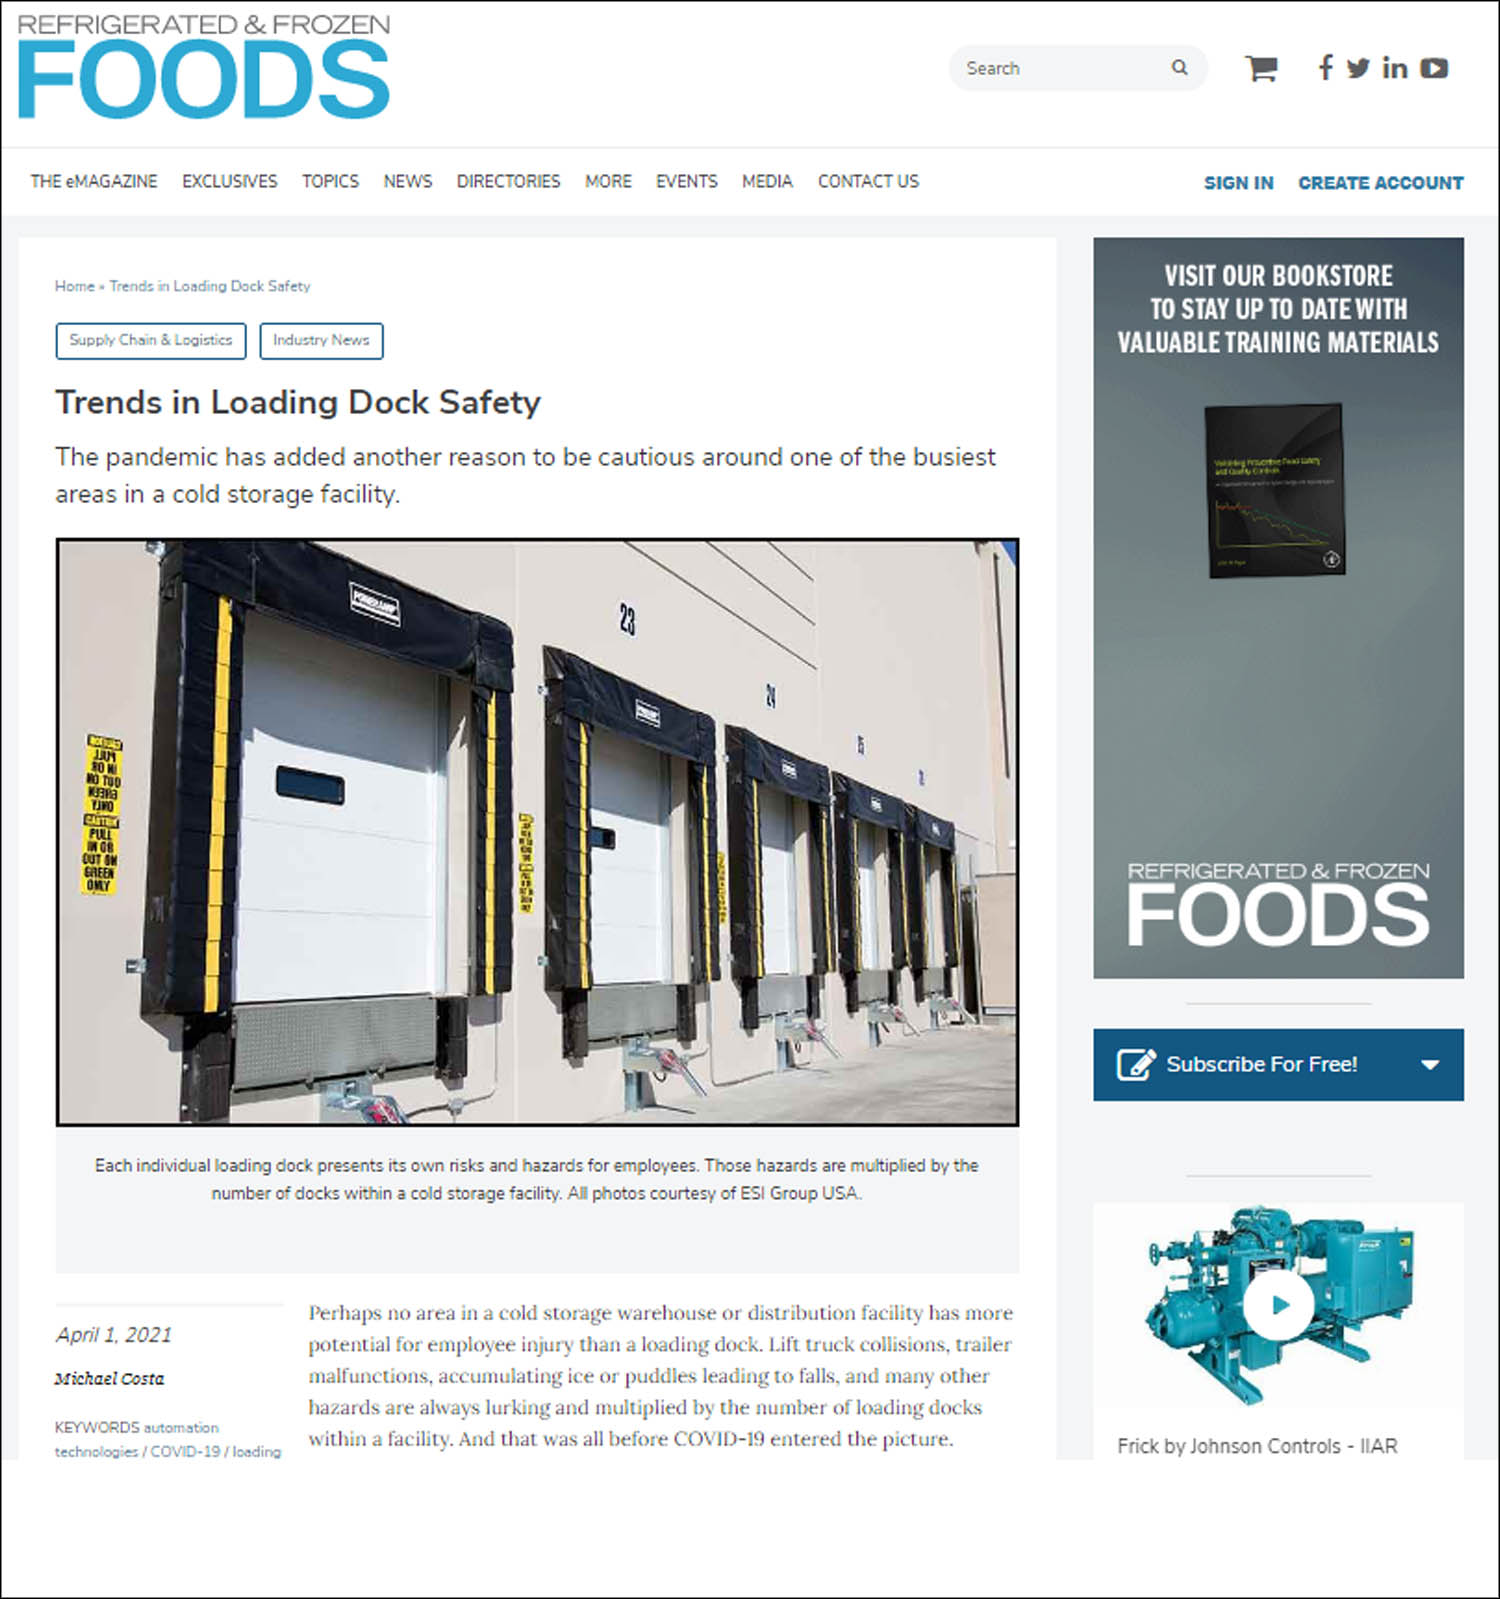 Rytec in Refrigerated & Frozen Roods